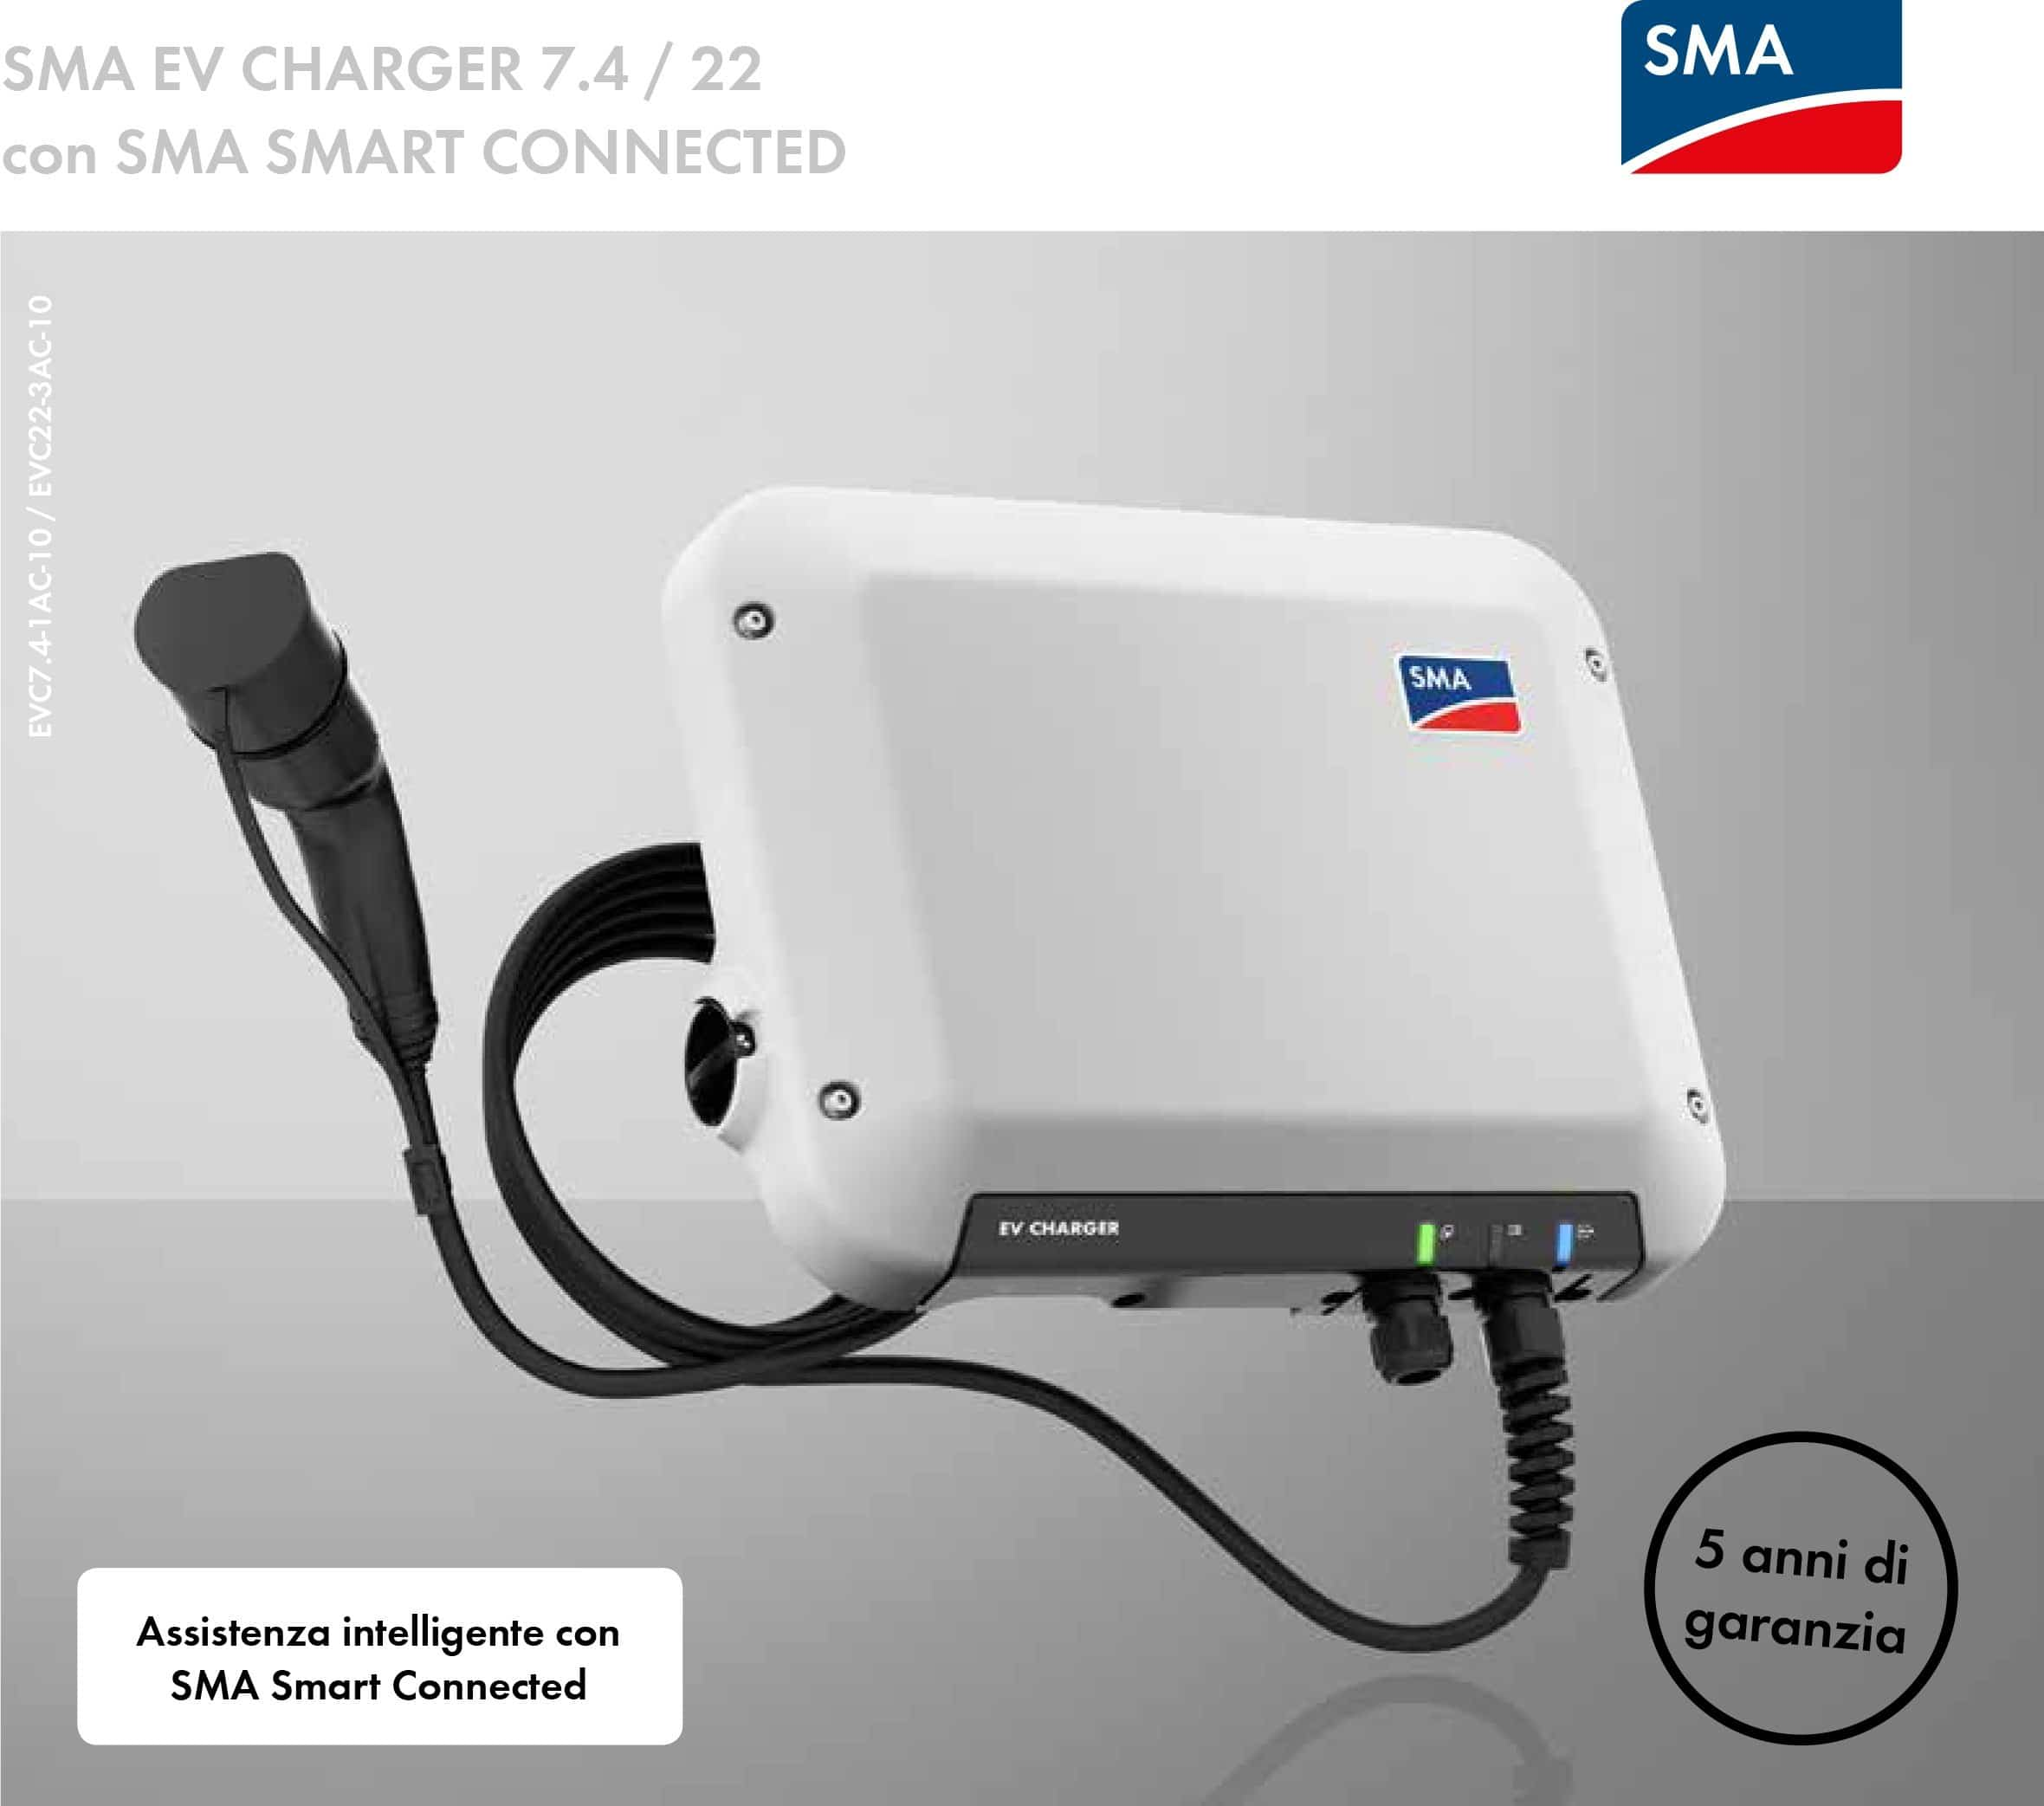 EV CHARGER 7.4:22 con SMA SMART CONNECTED